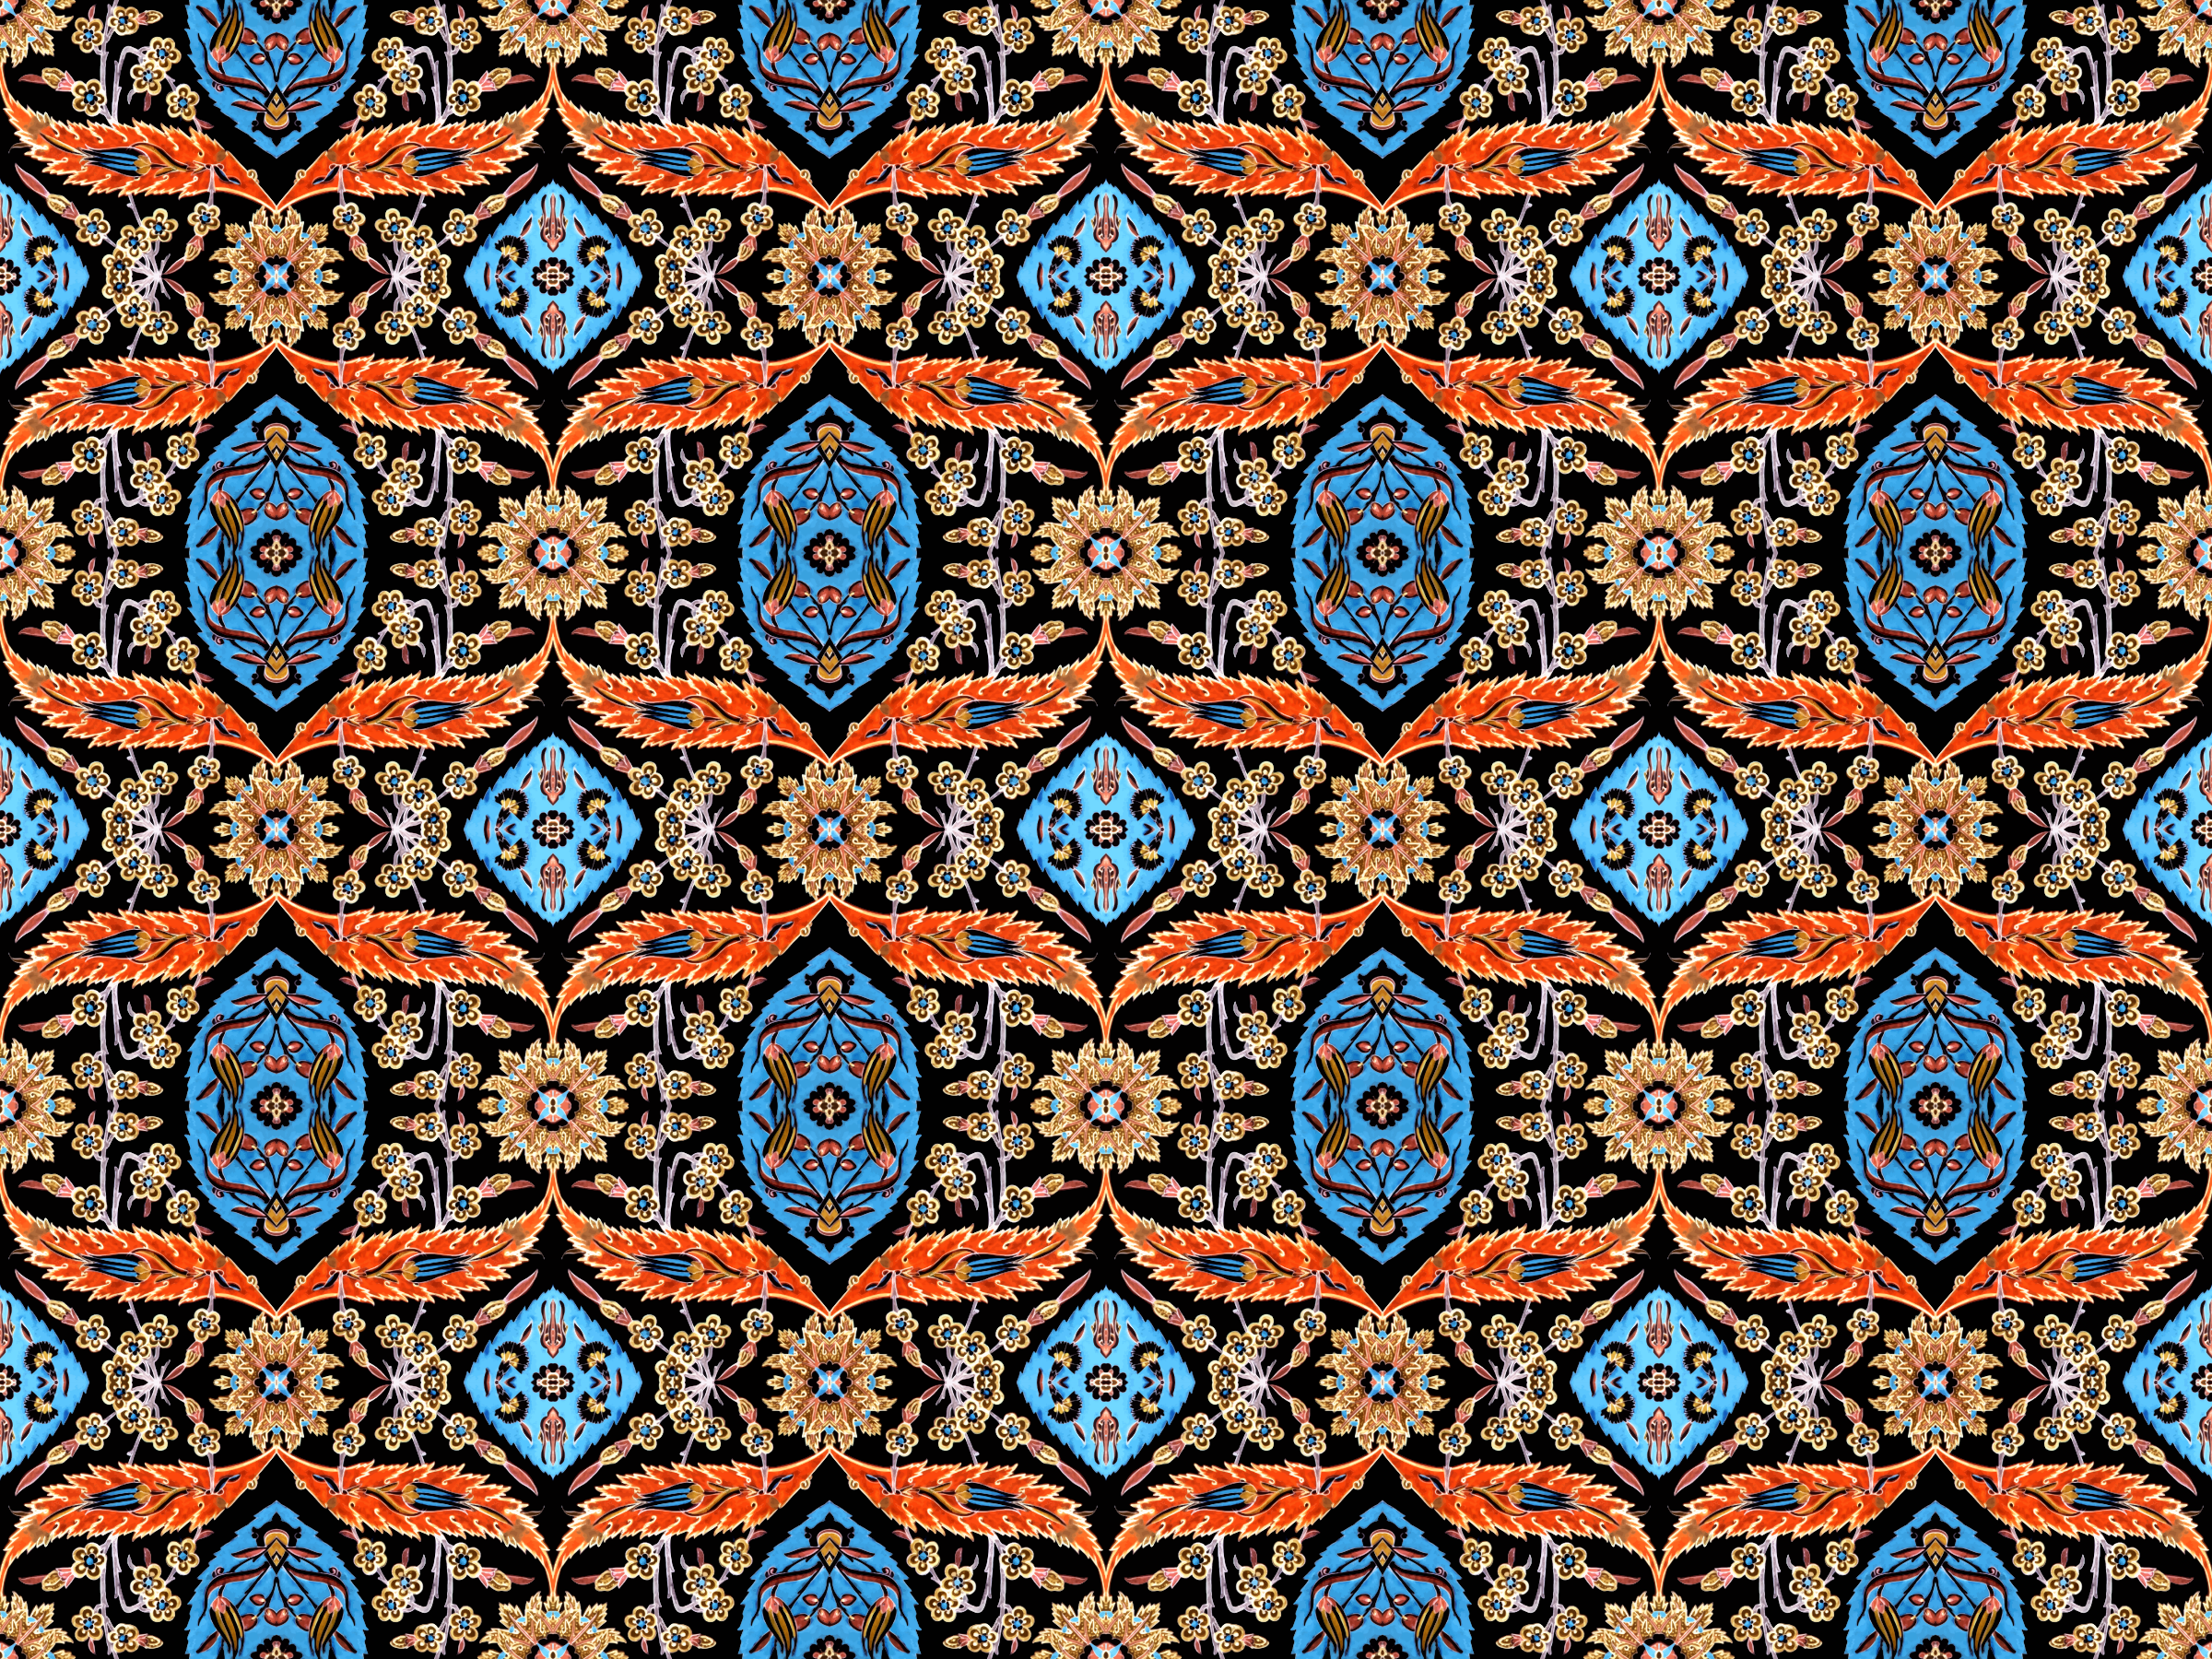 Floral pattern 6 (colour 4) by Firkin